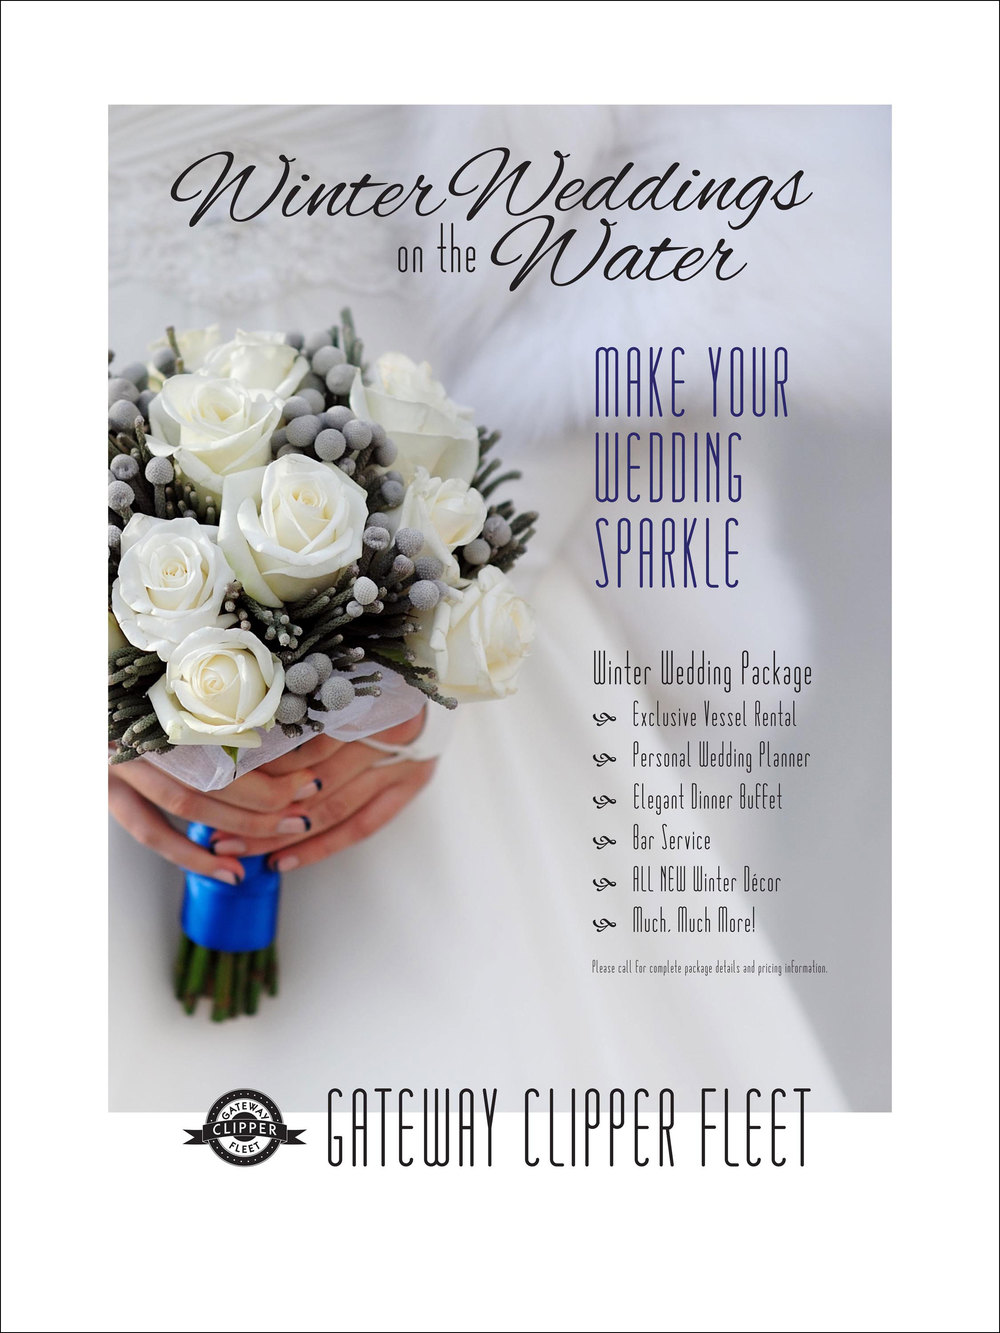 Winter Wedding Package Bridal Show Poster